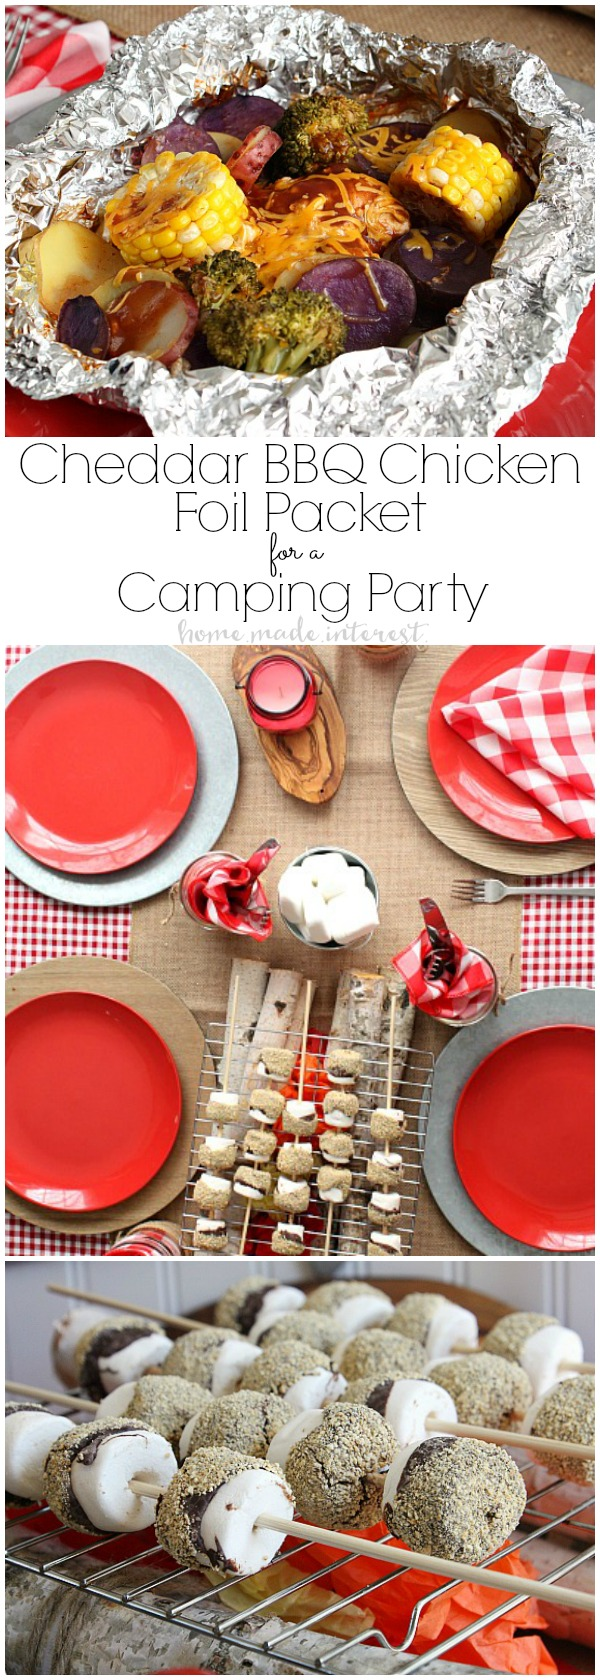 My family loves camping but we don't have as much time as we'd like to go camping out in the woods so I brought the campfire to us with this easy Camping Party plan. How to make a Faux campfire and individual foil packet meals that are the perfect camping food make this camping party something special for the whole family.